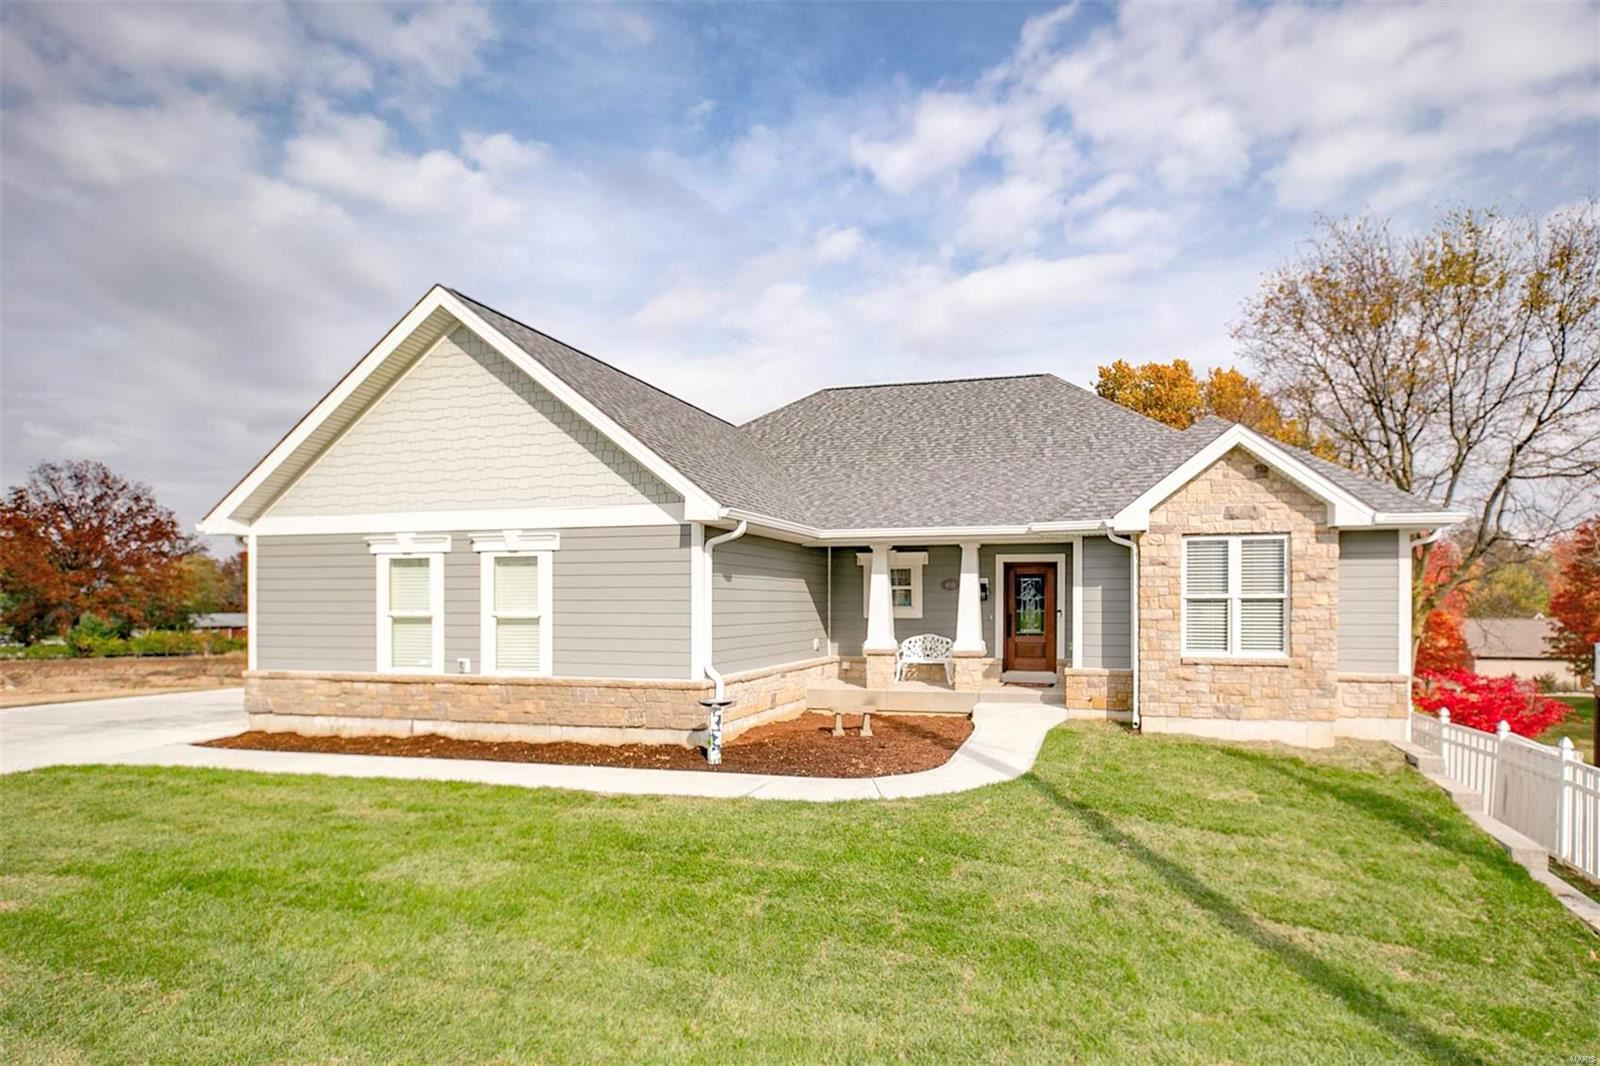 4915 Butler Hill Road, Concord, MO 63128 - MLS#: 21051319